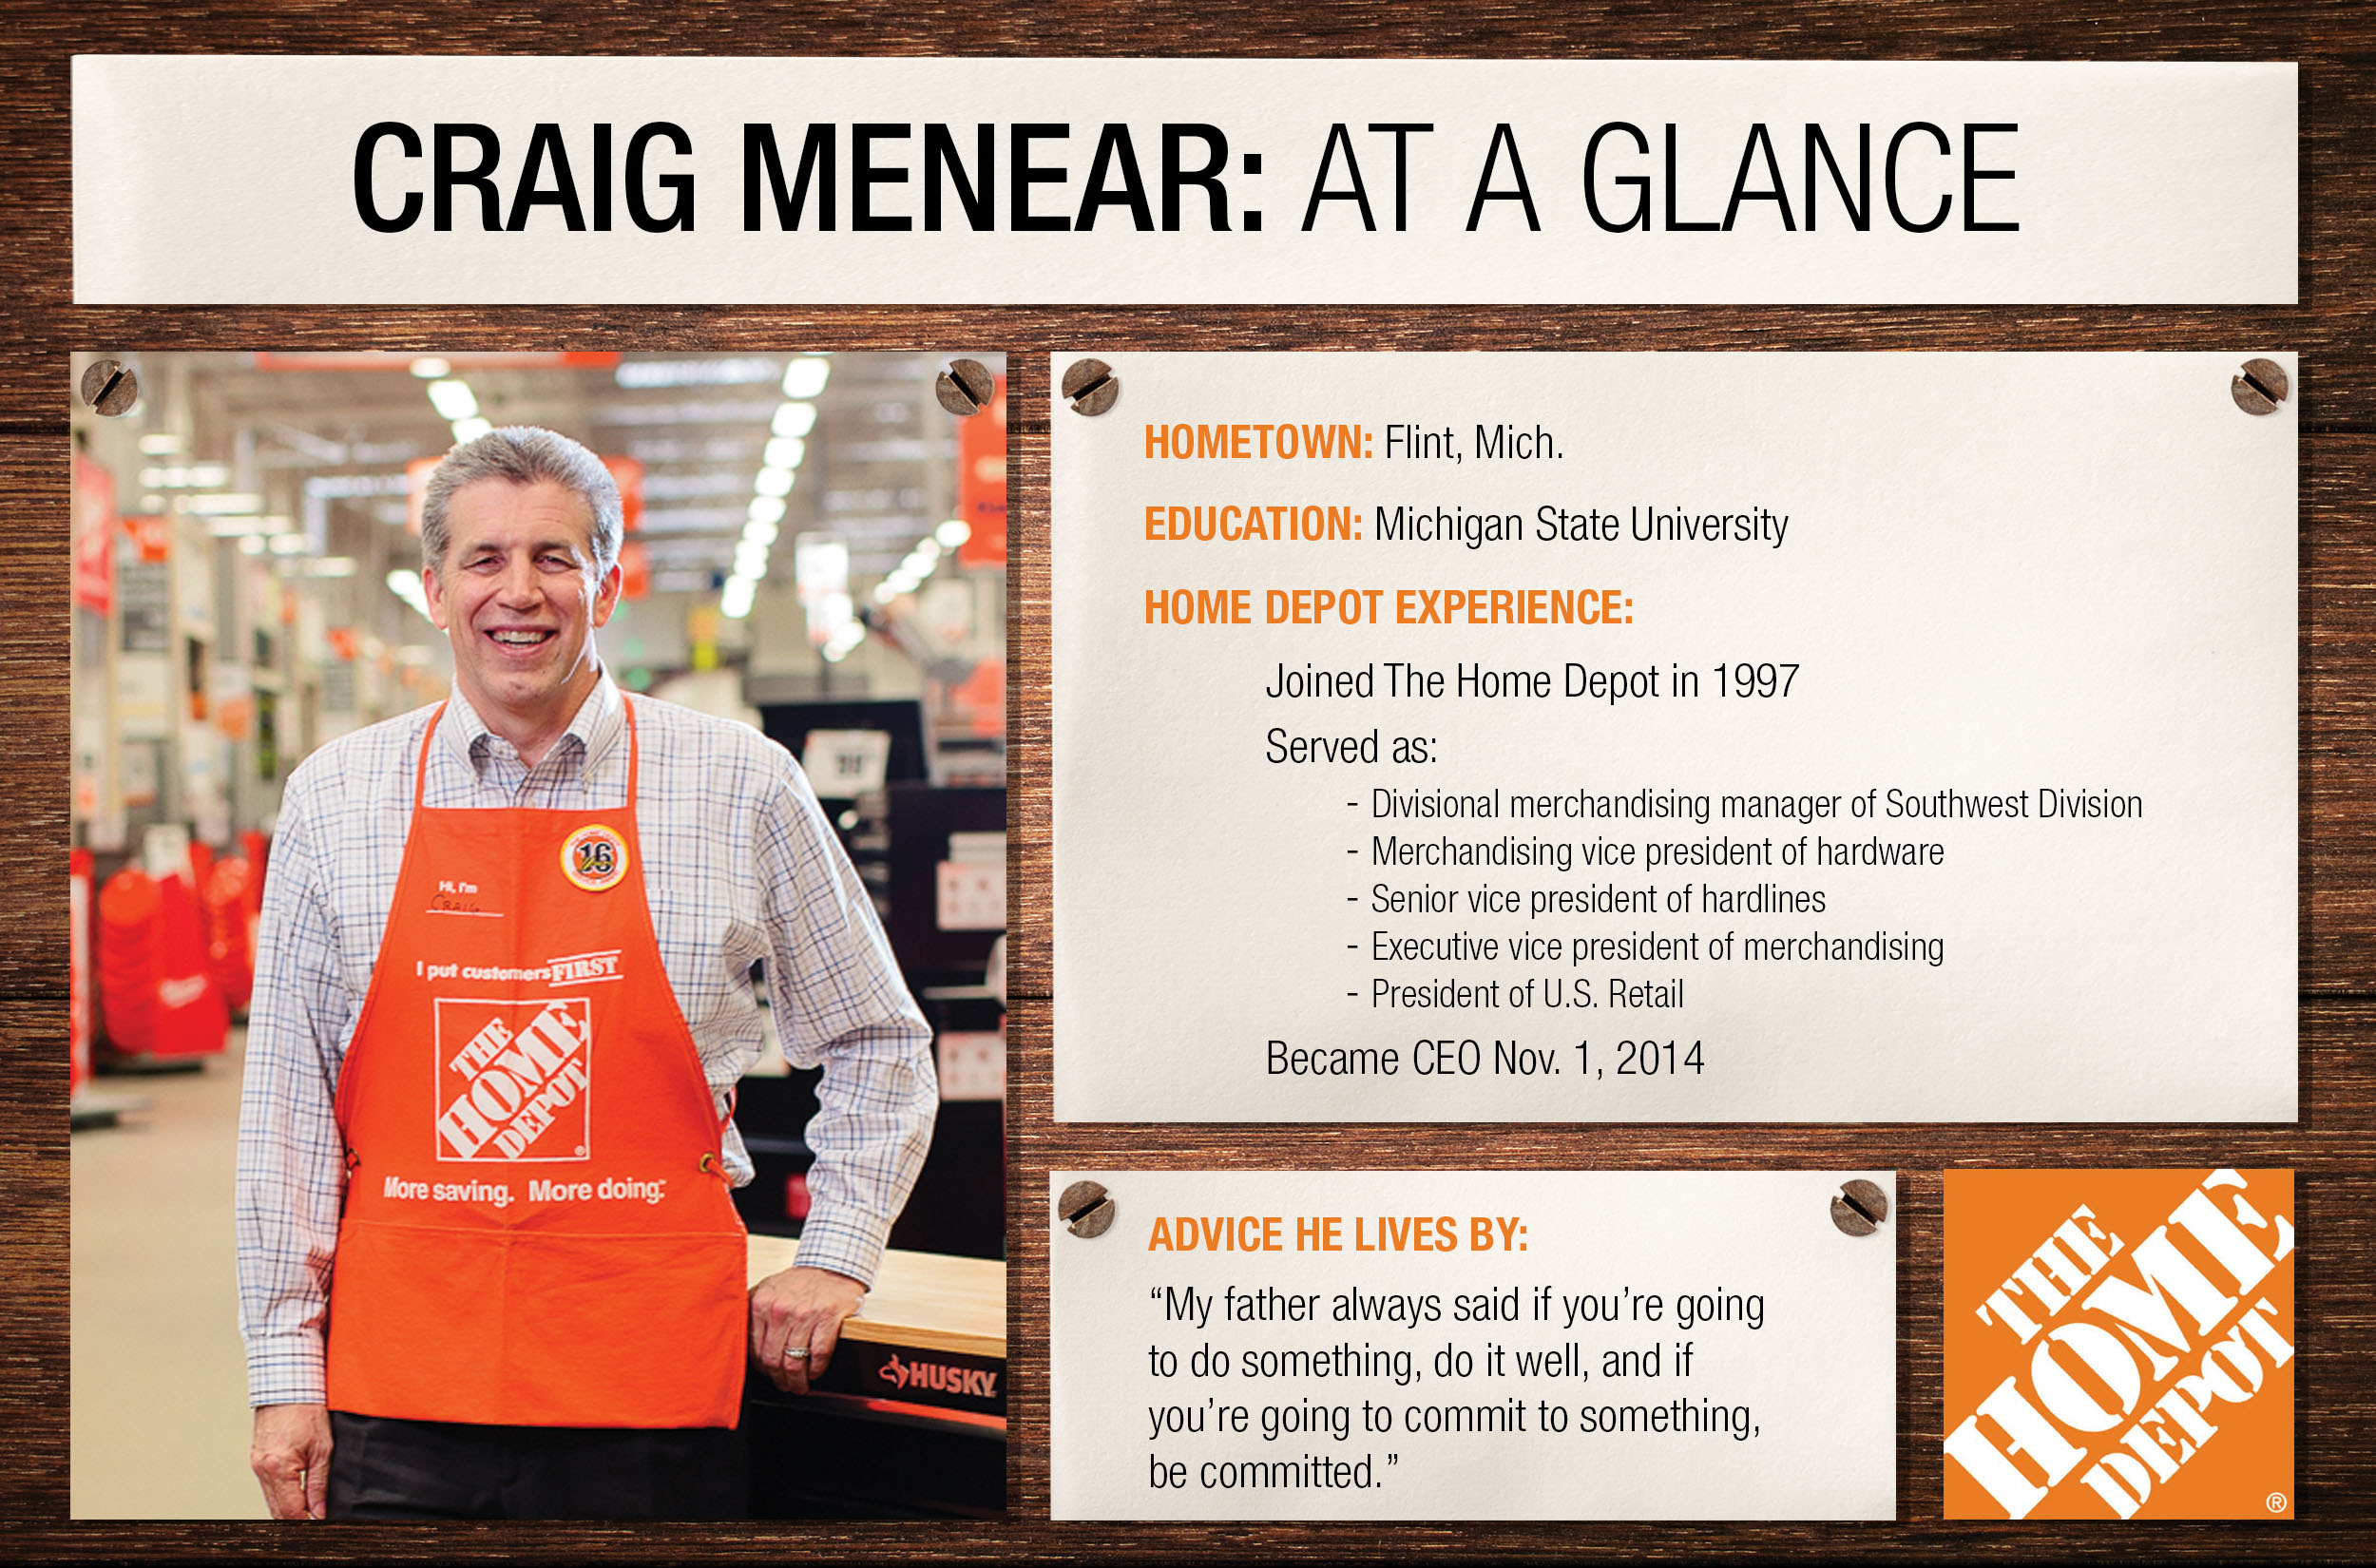 Craig Menear CEO of The Home Depot